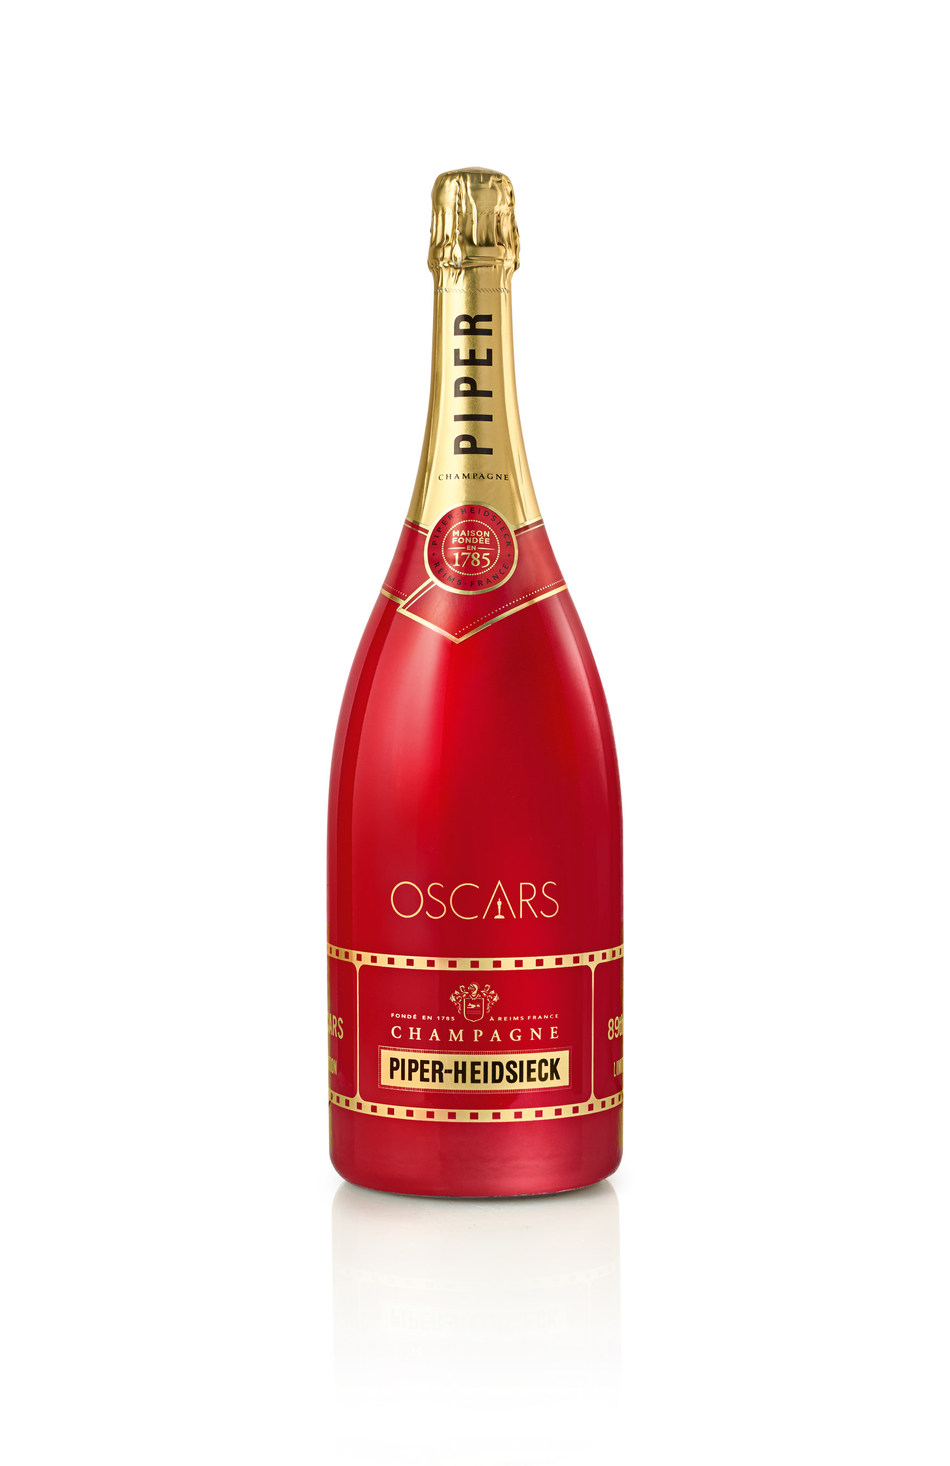 Piper-Heidsieck Returns to the Oscars(R) with Limited Edition Magnums